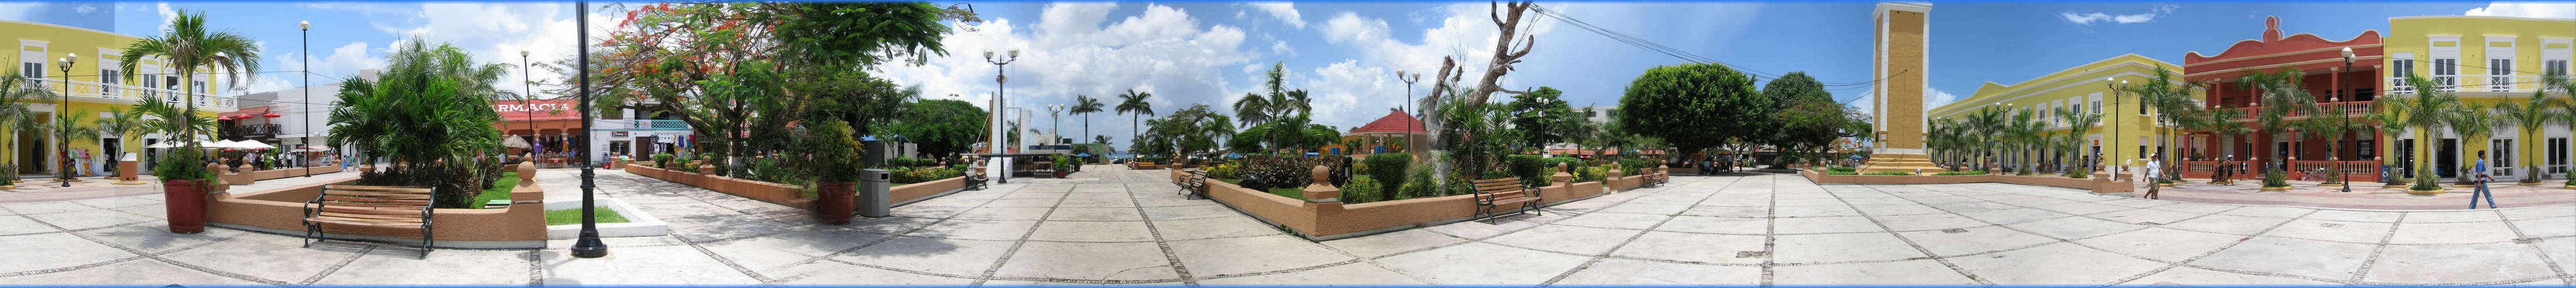 Cozumel Downtown Plaza